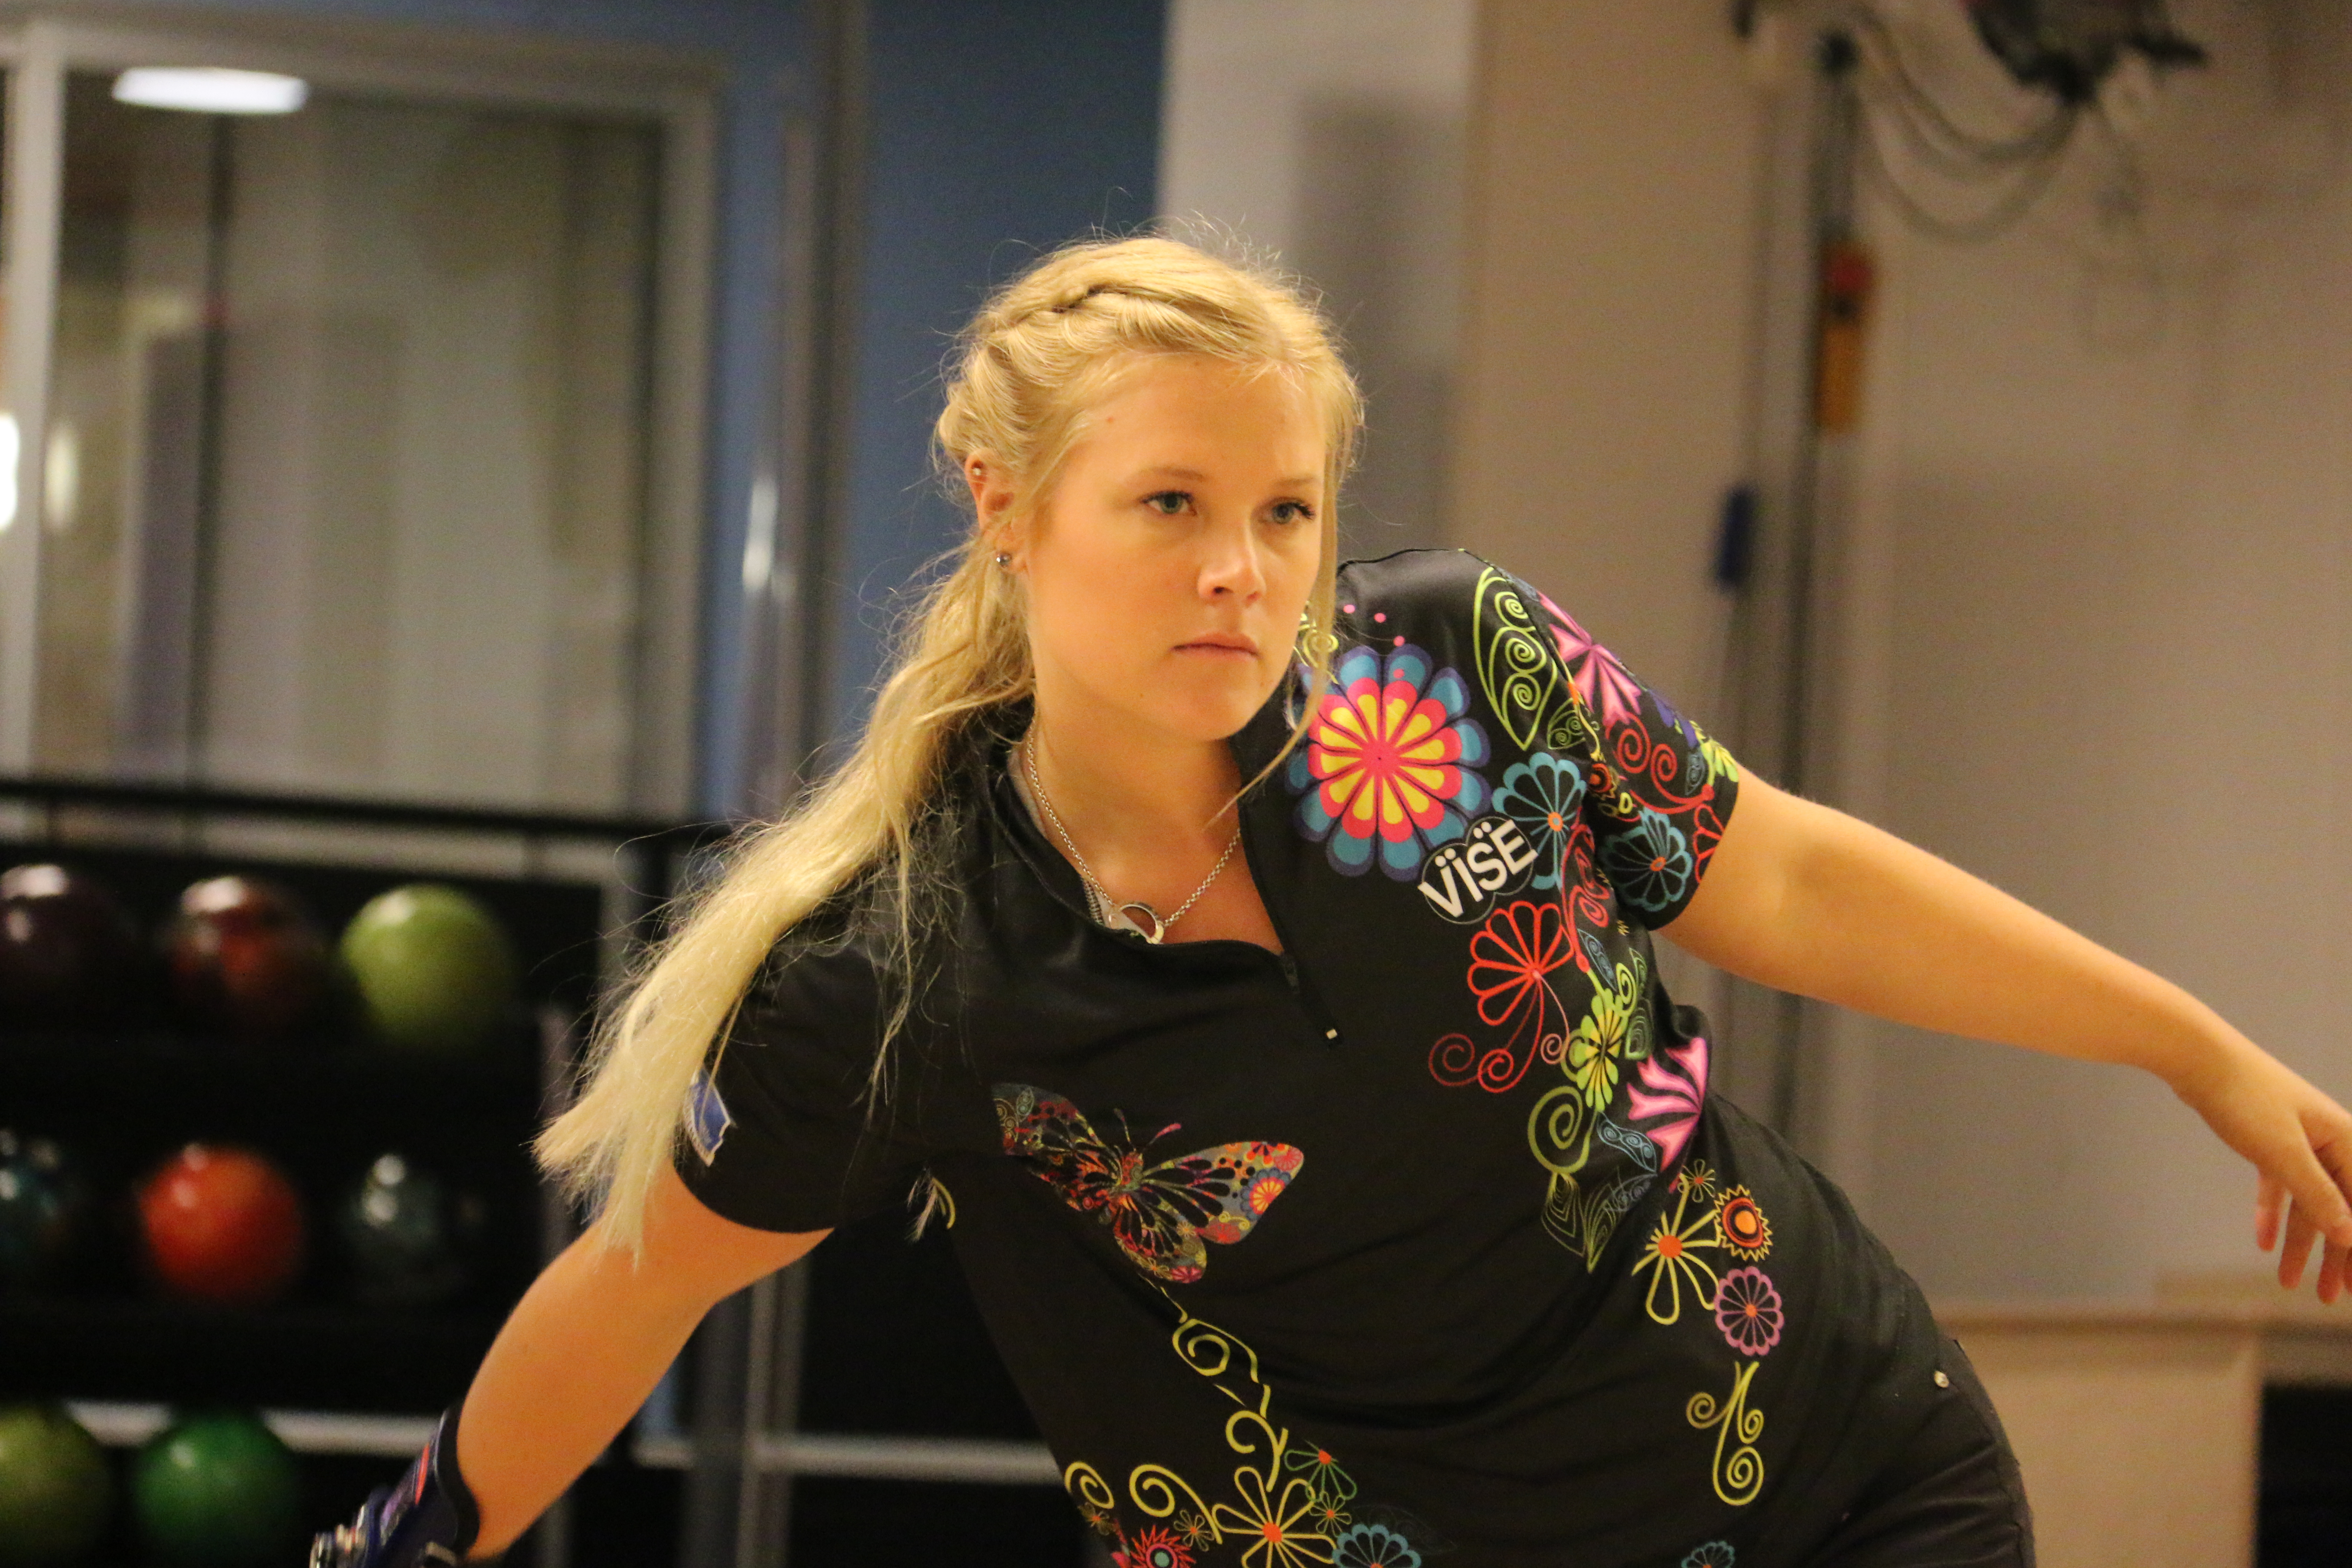 Joline Persson Planefors